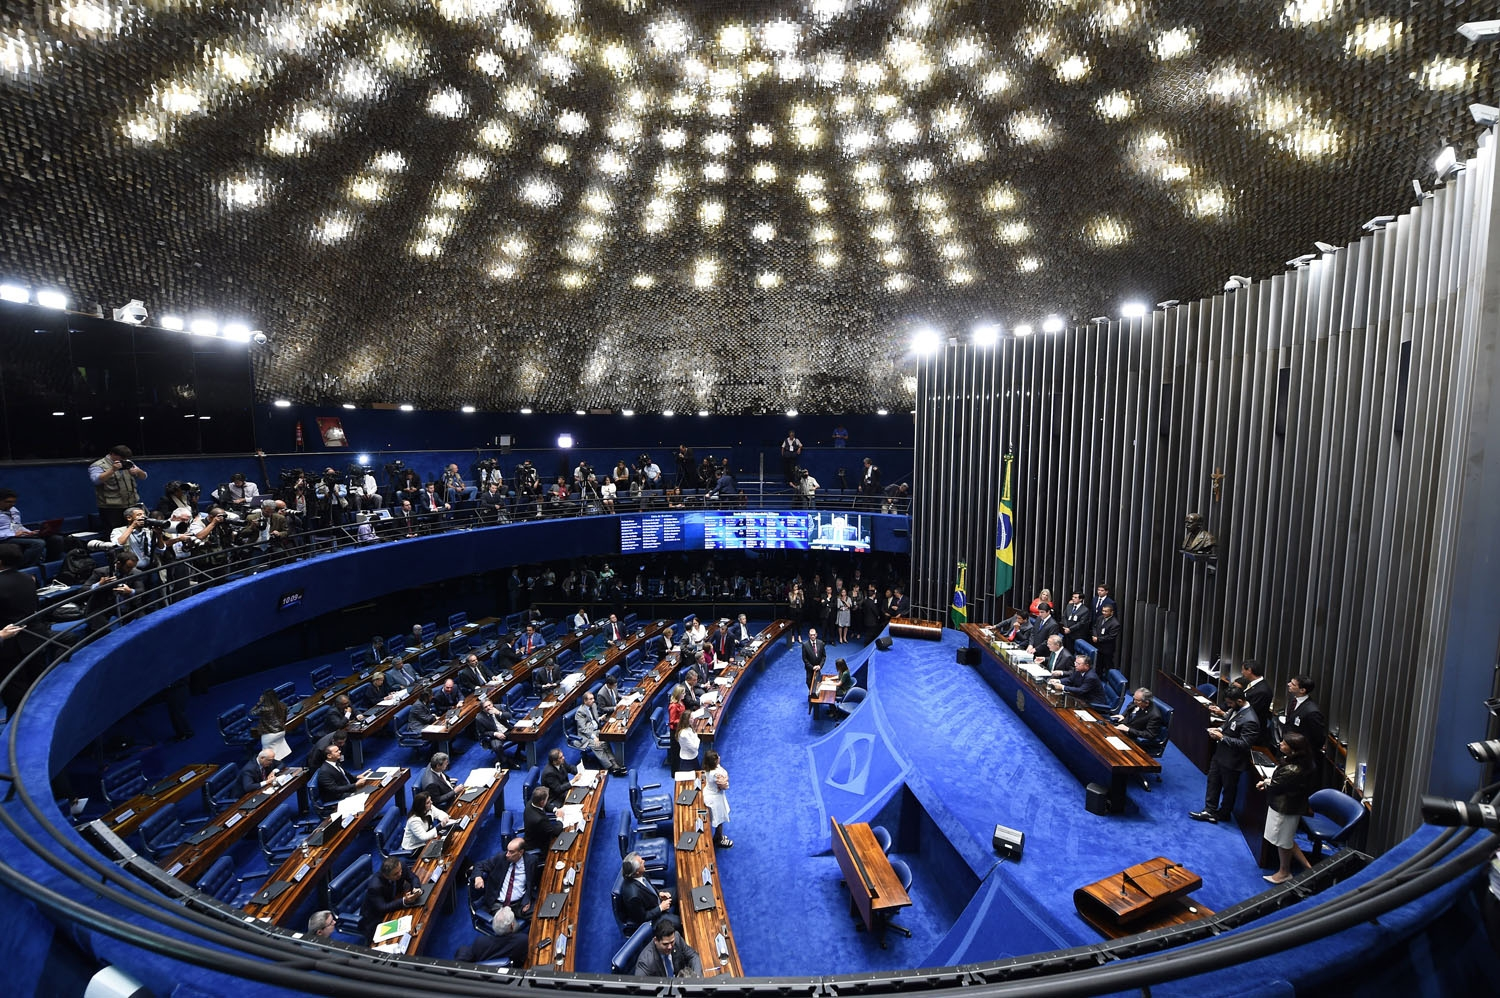 Overview of the Senate session during a debate of a vote on suspending President Dilma Rousseff and launching an impeachment trial, in Brasilia on May 11, 2016